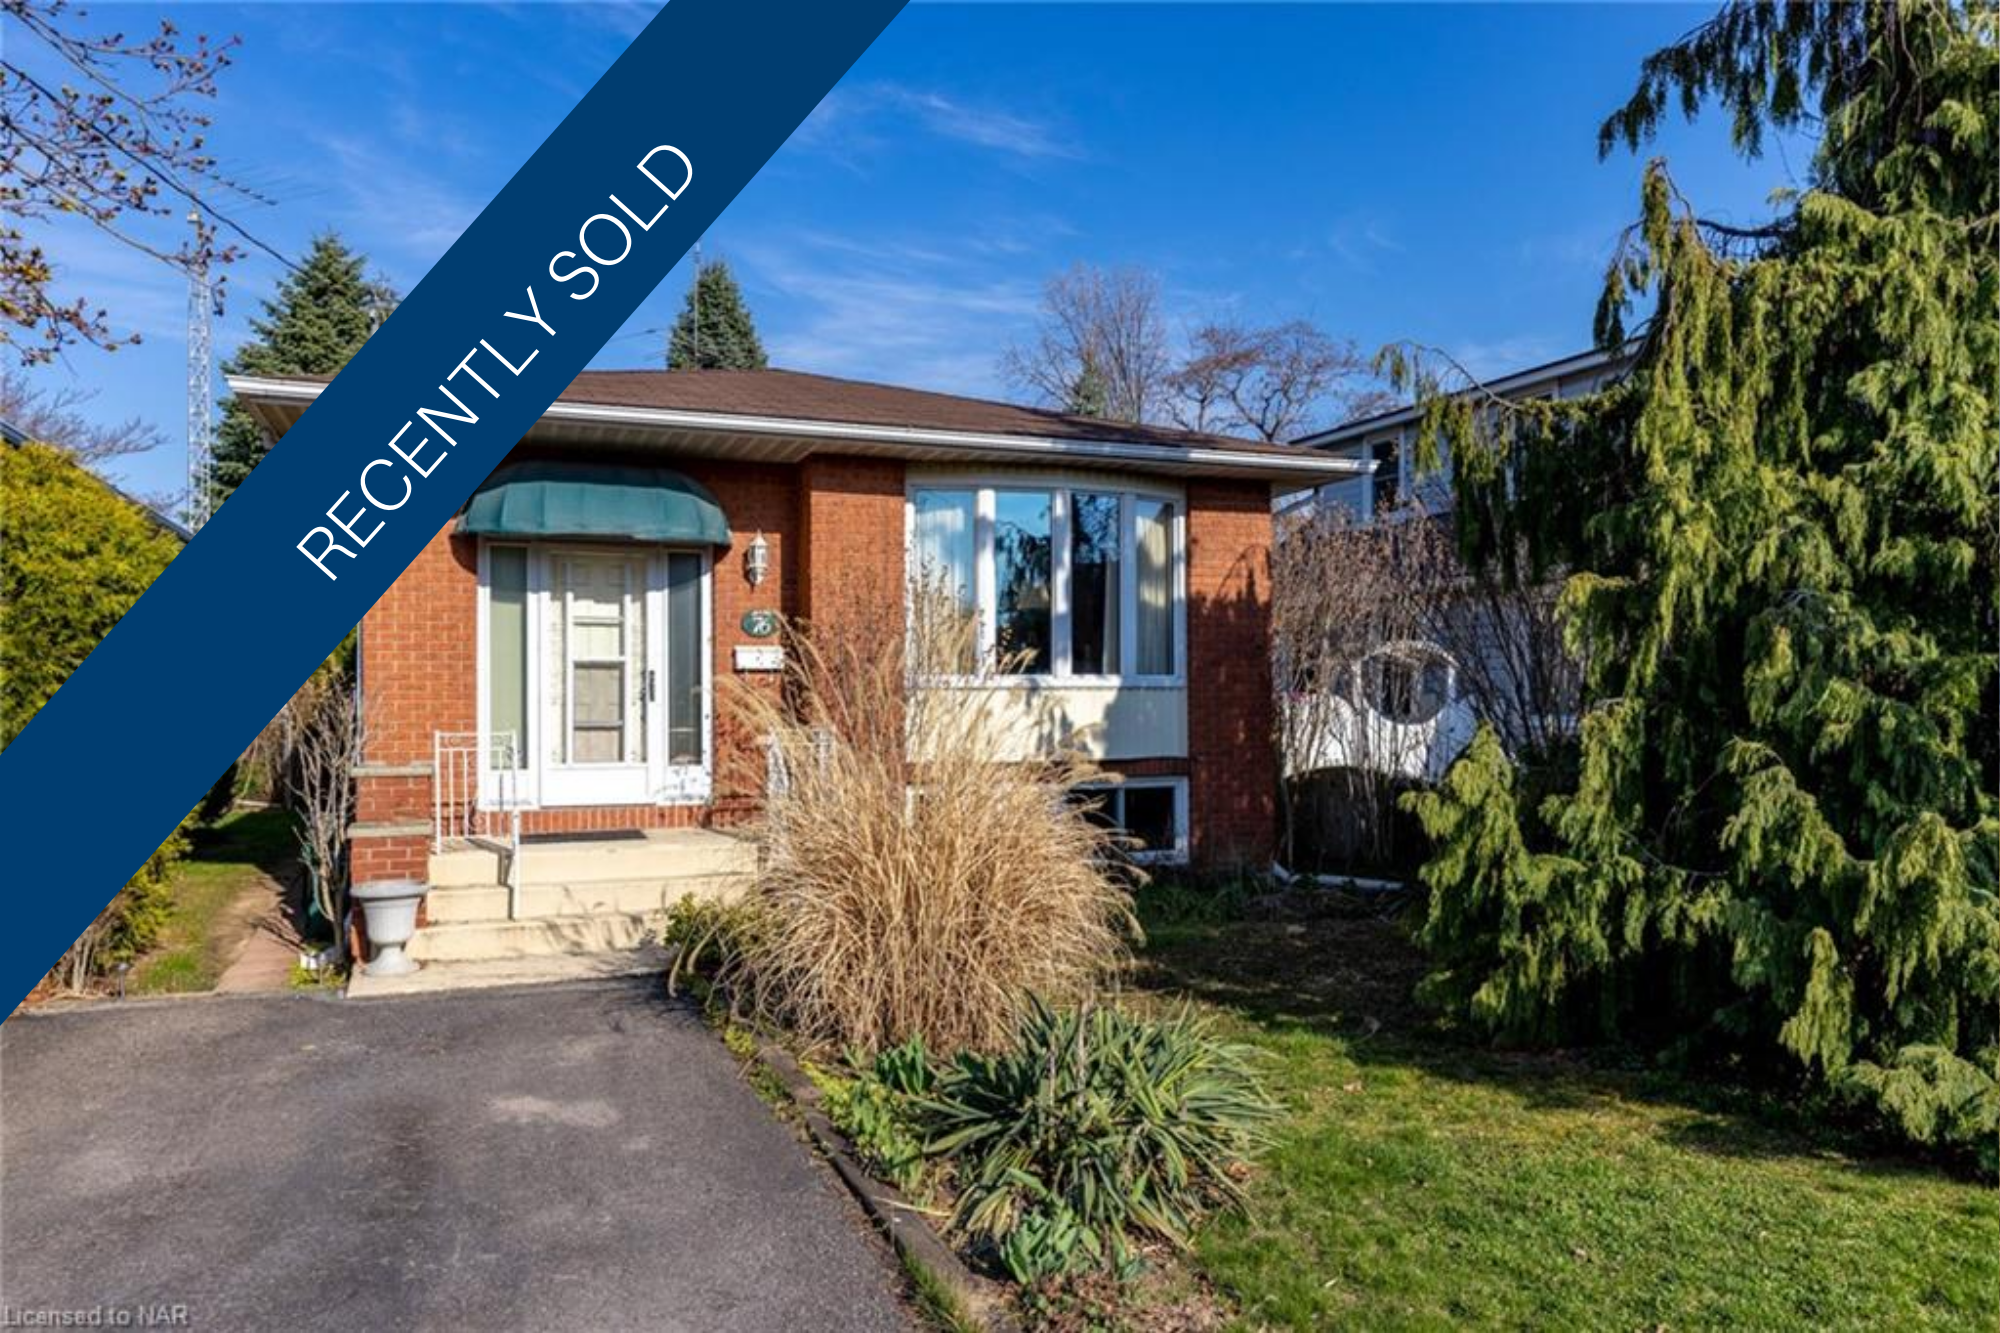 Property image for 76 Margery Ave, St. Catharines  Copy